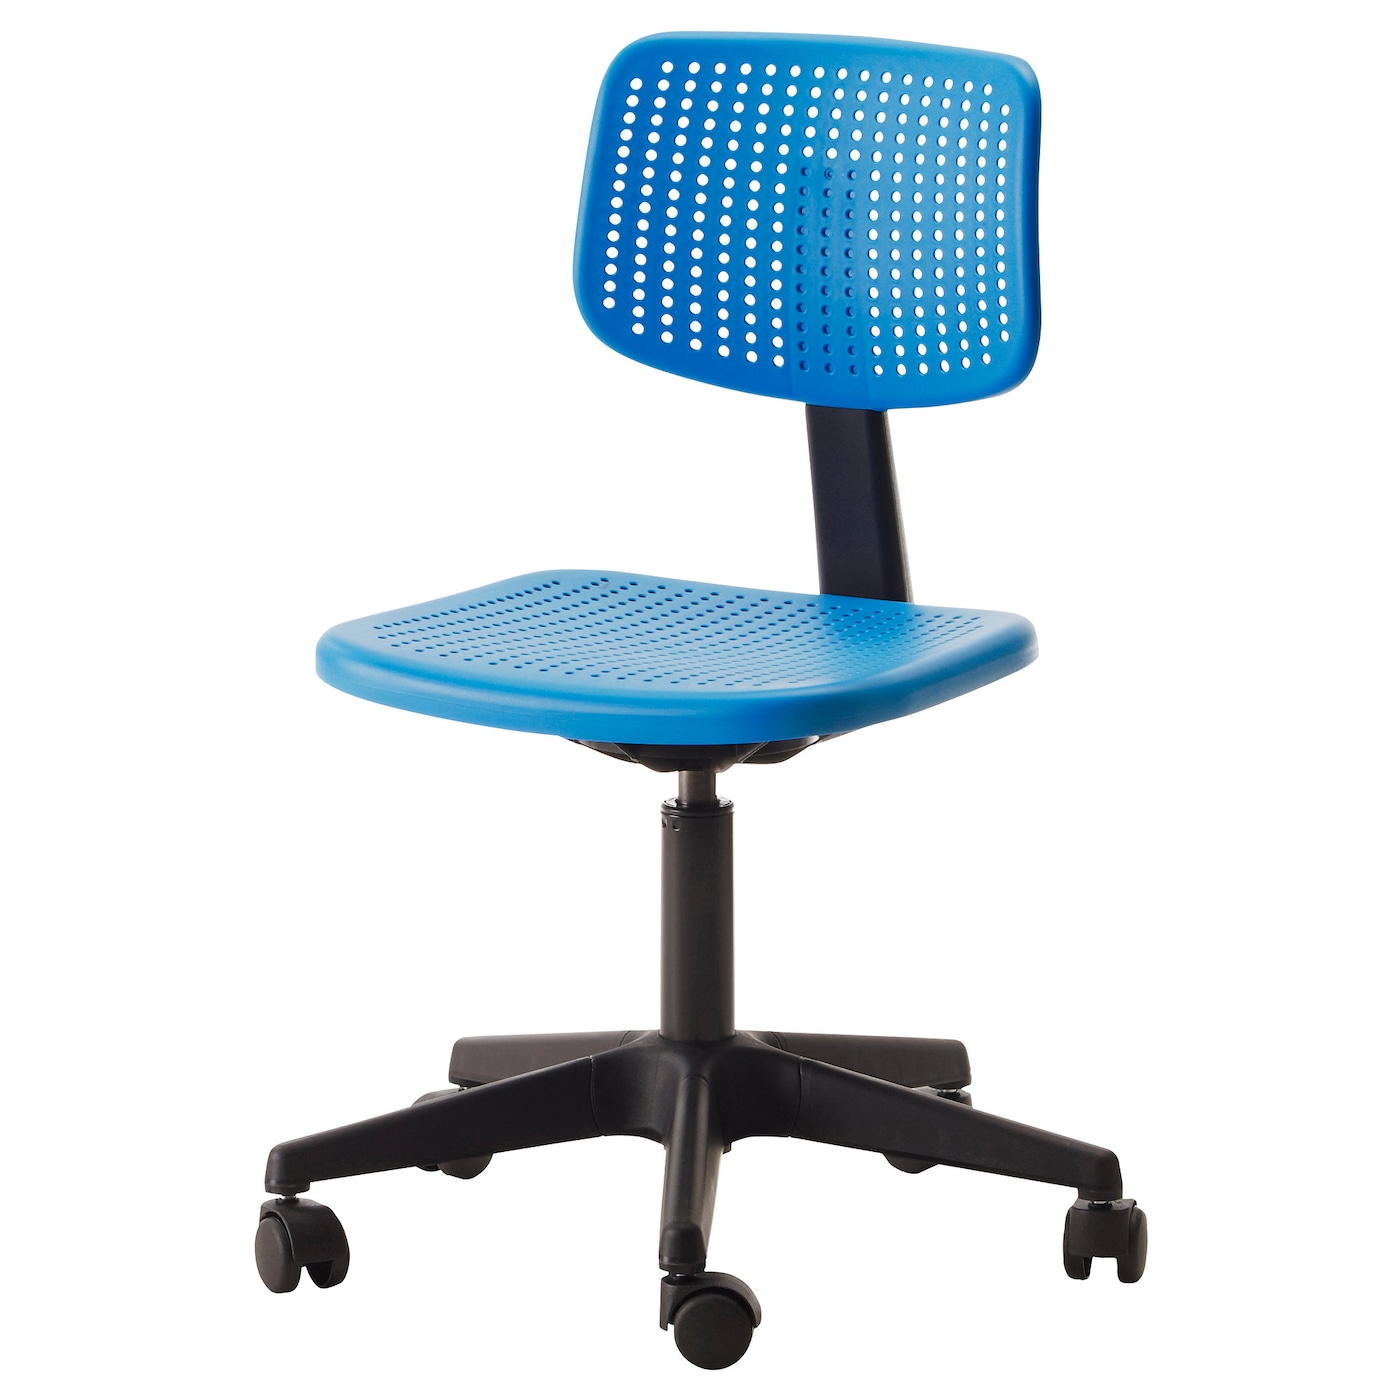 Ikea Alrik Swivel Chair You Sit Comfortably Since The Is Adjule In Height